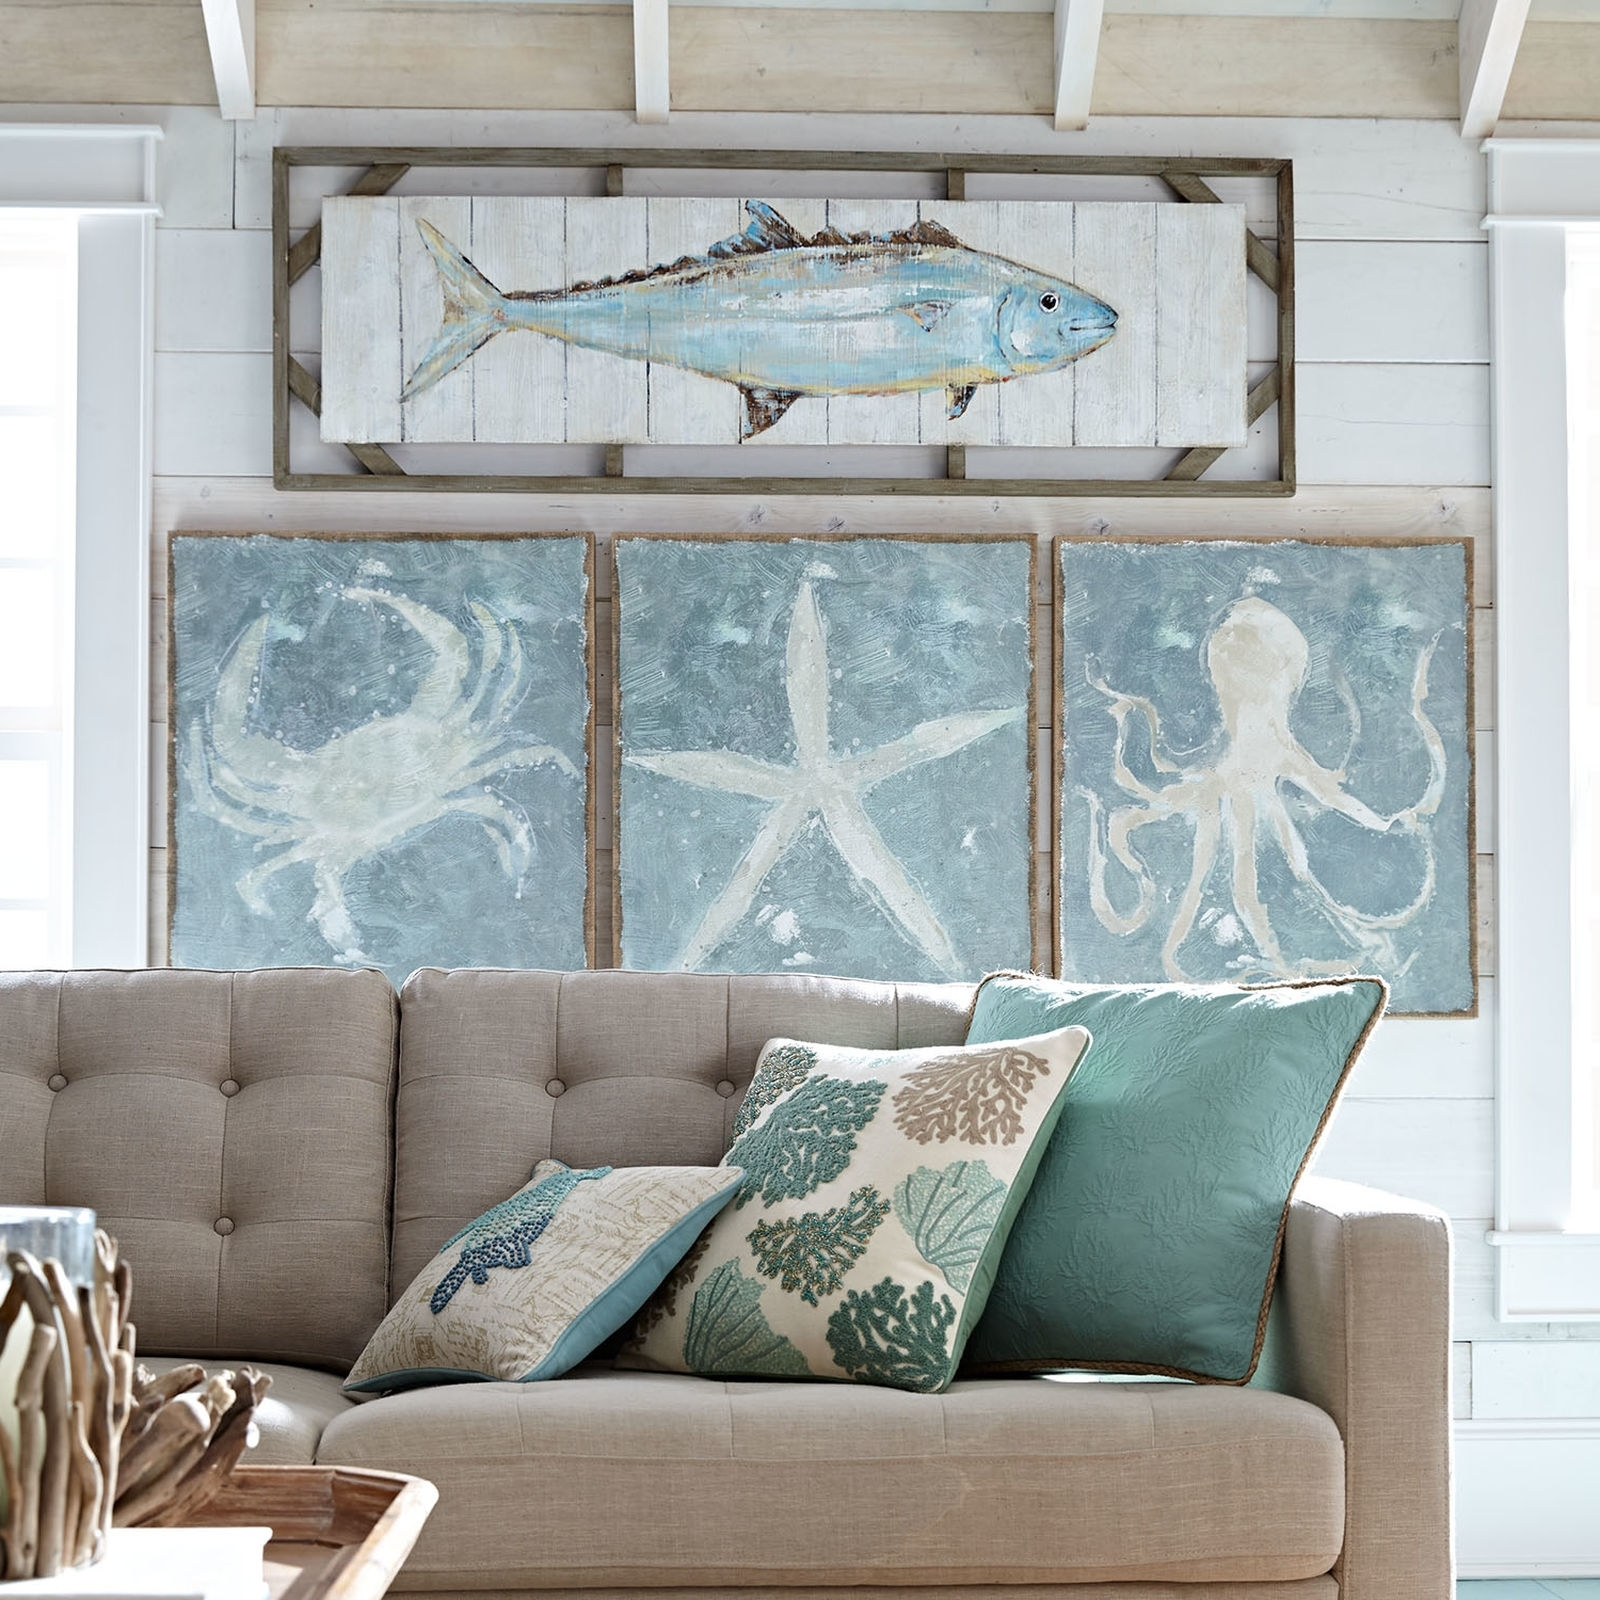 Most Recent Liven Up Your Walls With Our Marine Life Art (View 7 of 15)